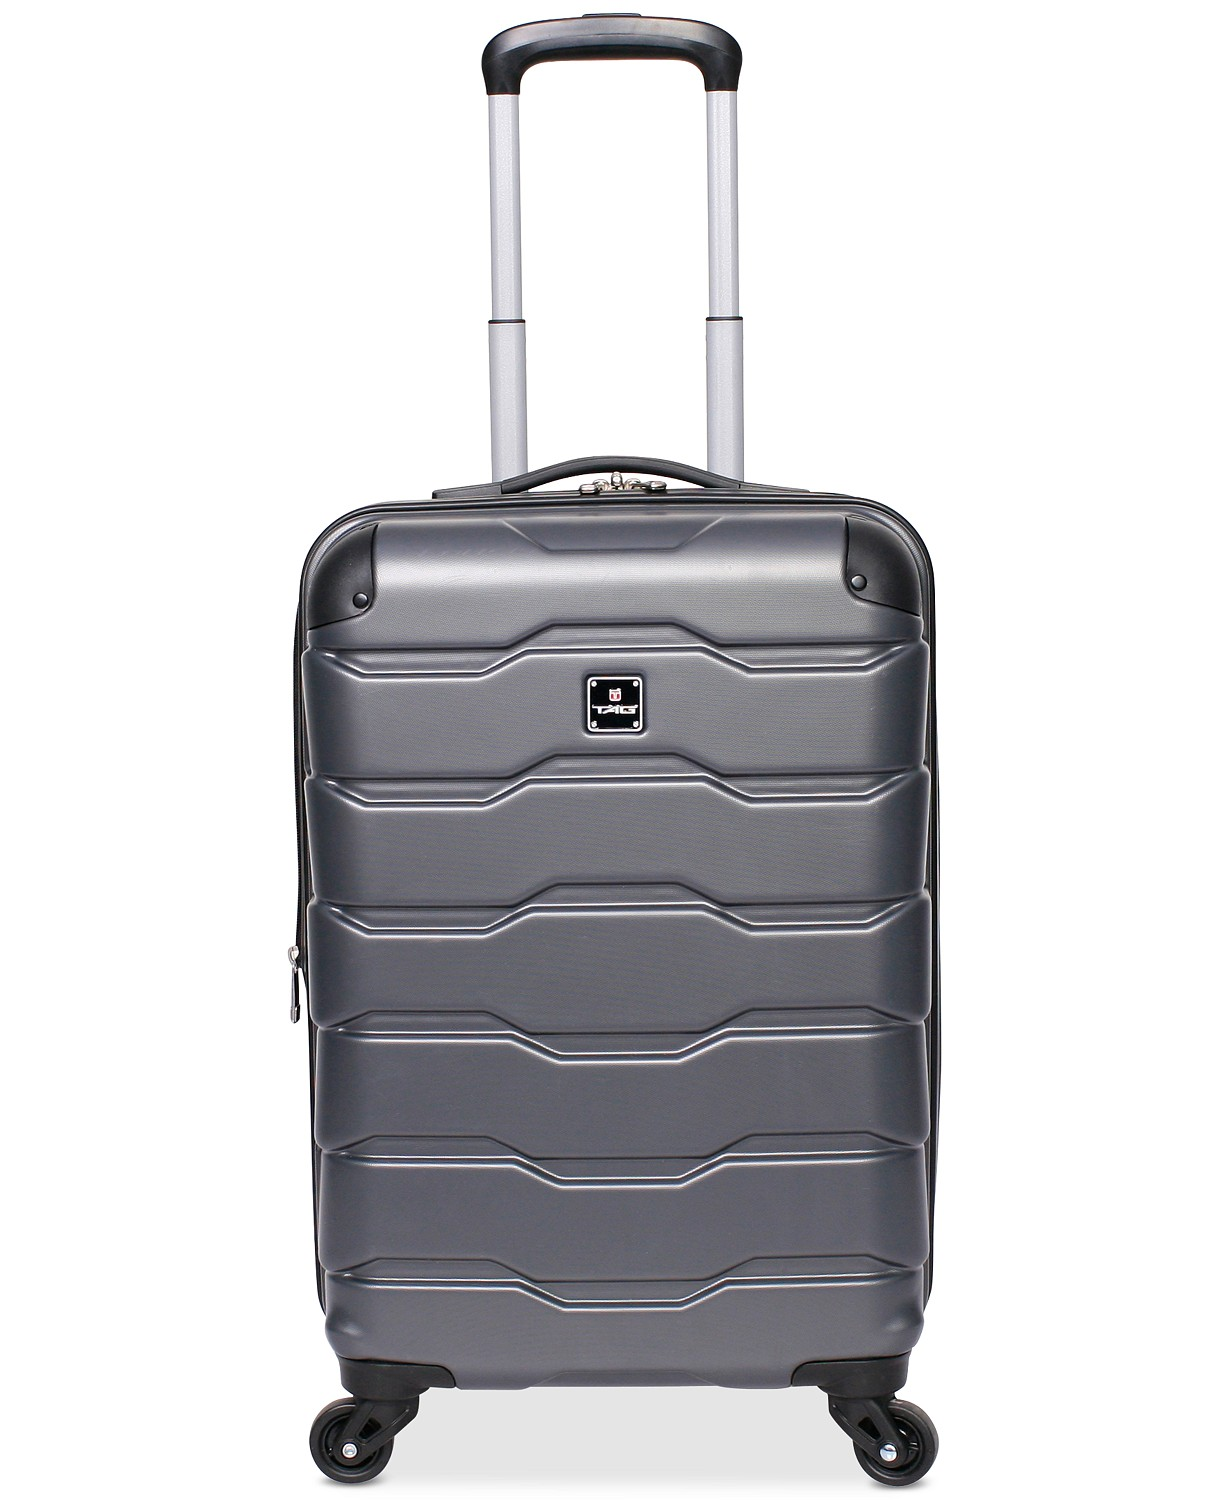 "Matrix 2 20"" Hardside Expandable Spinner Suitcase"